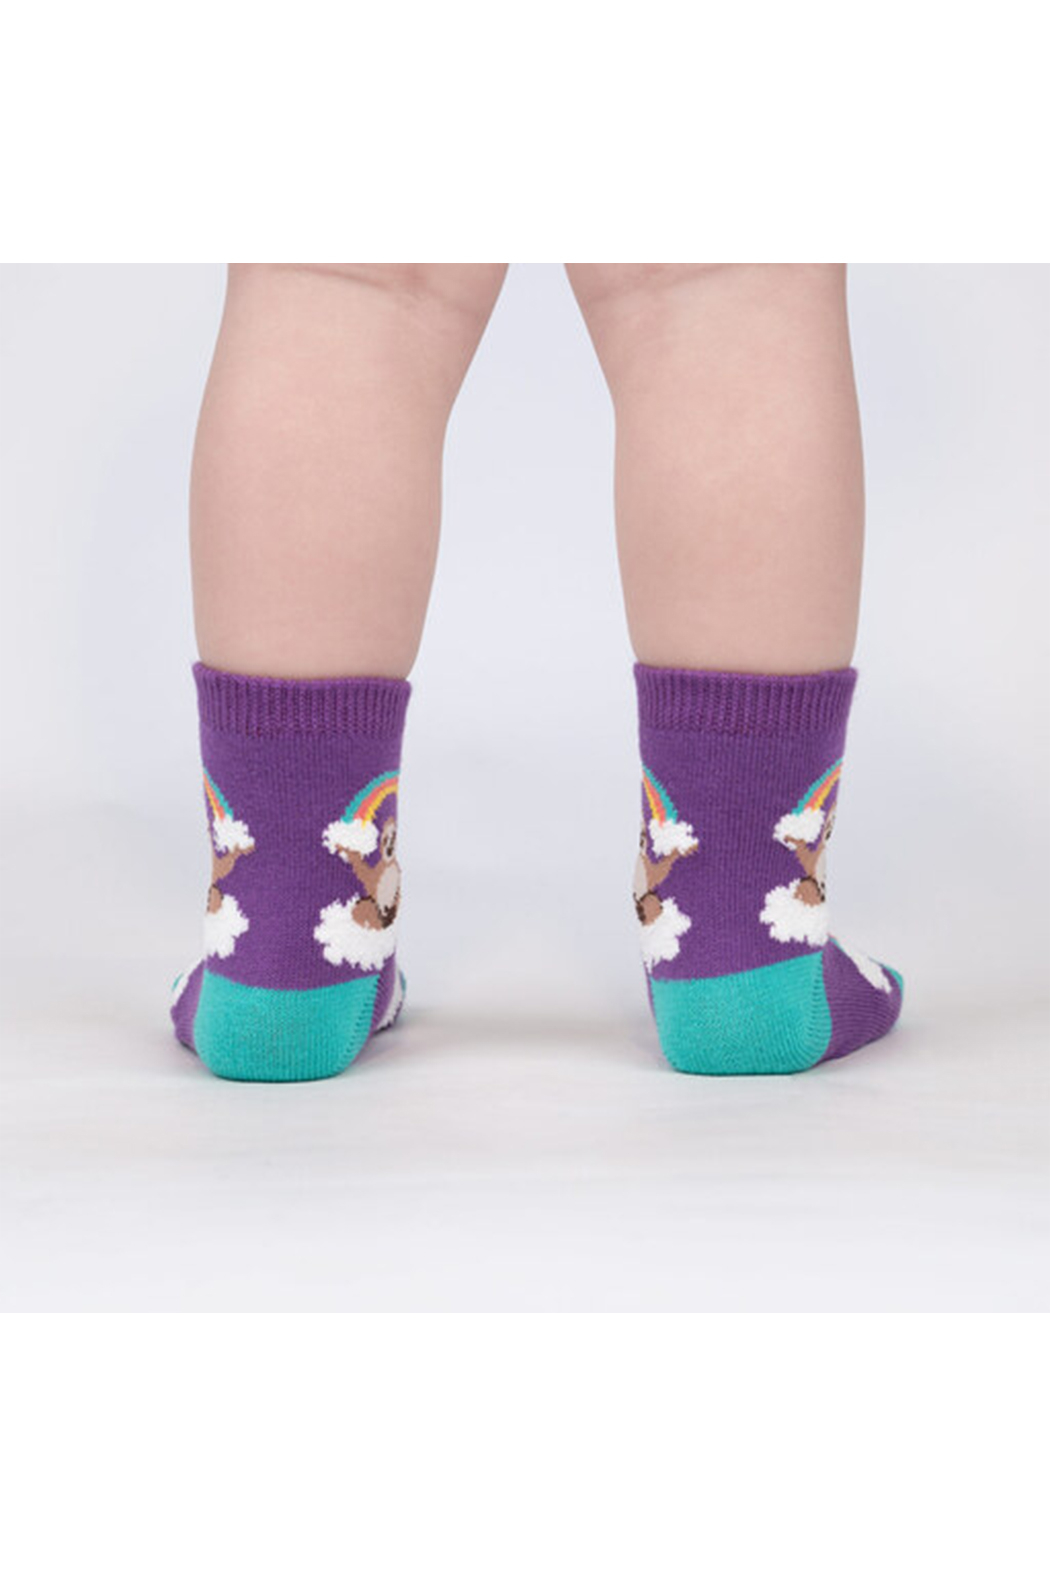 Sock it to me Sloth Dreams Crew Socks - Toddler - Front Full Image